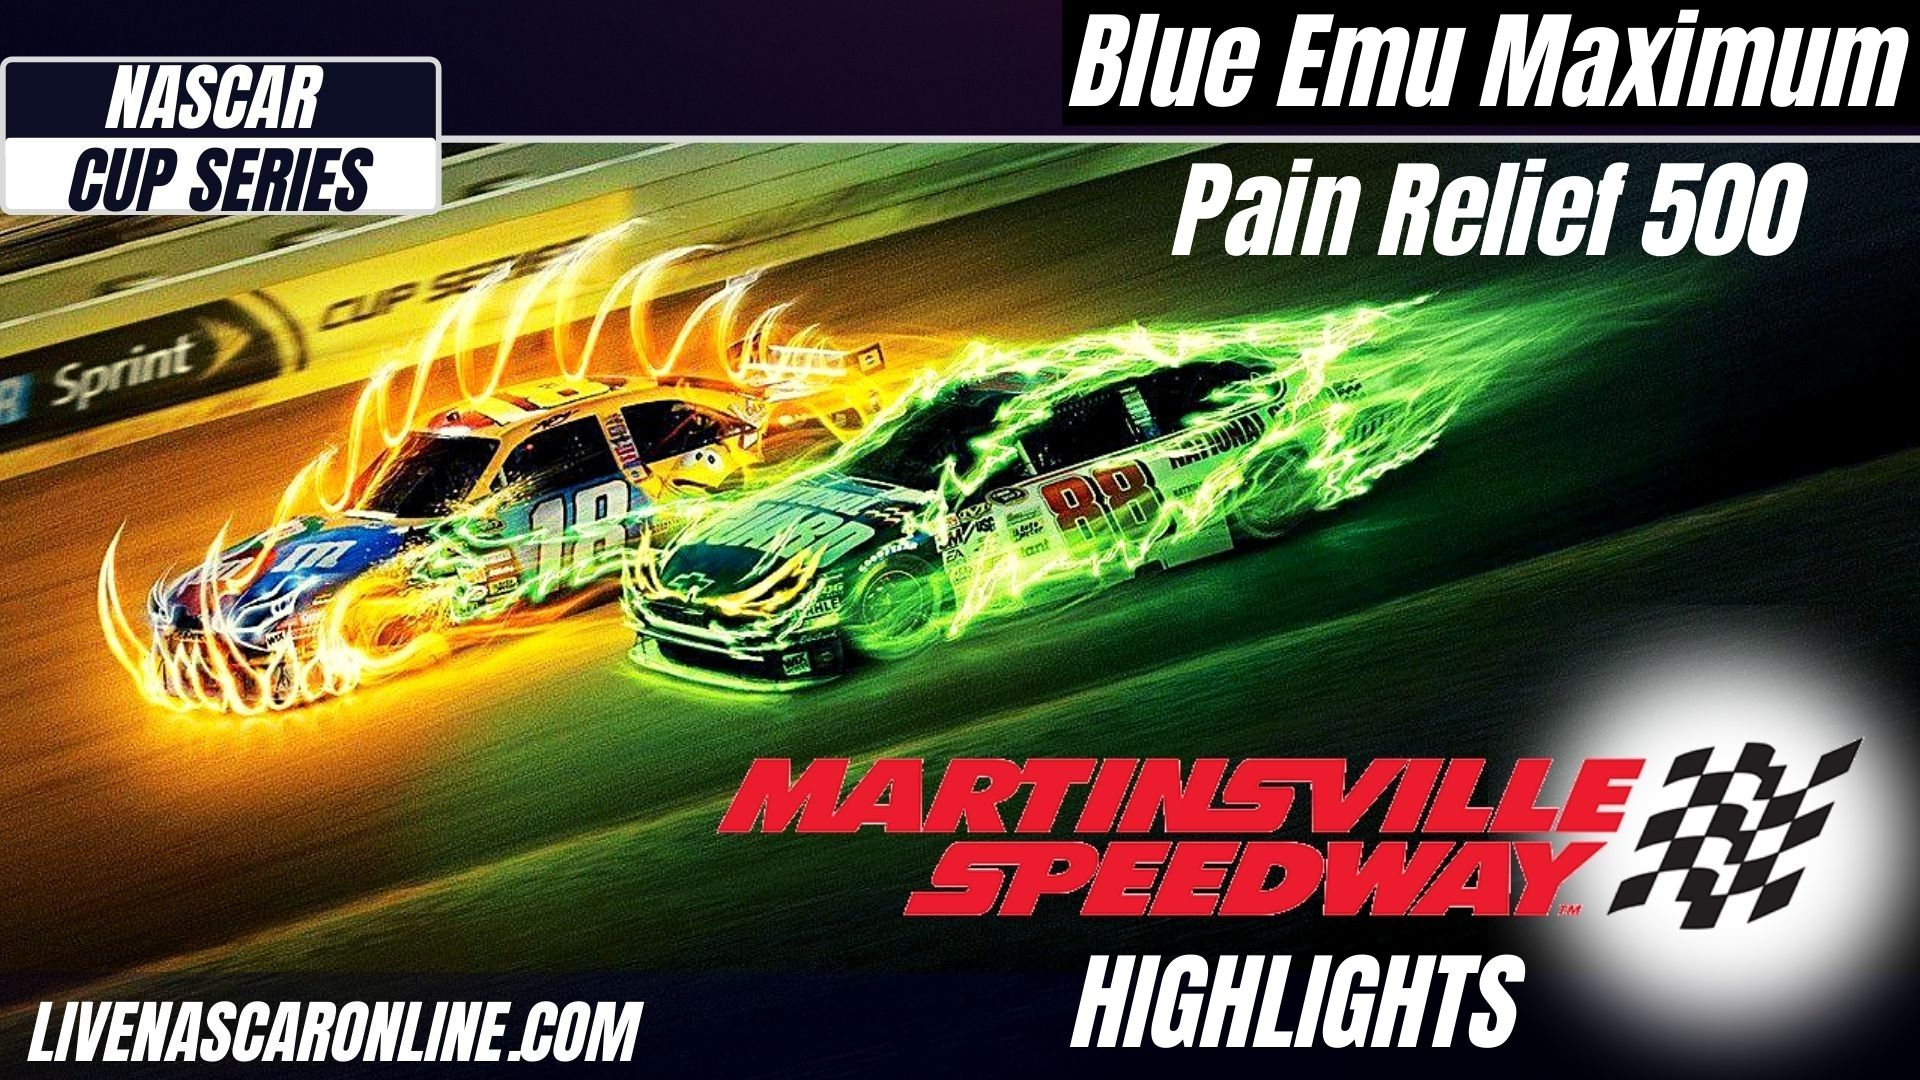 Maximum Pain Relief 500 Highlights 2021 Cup Series